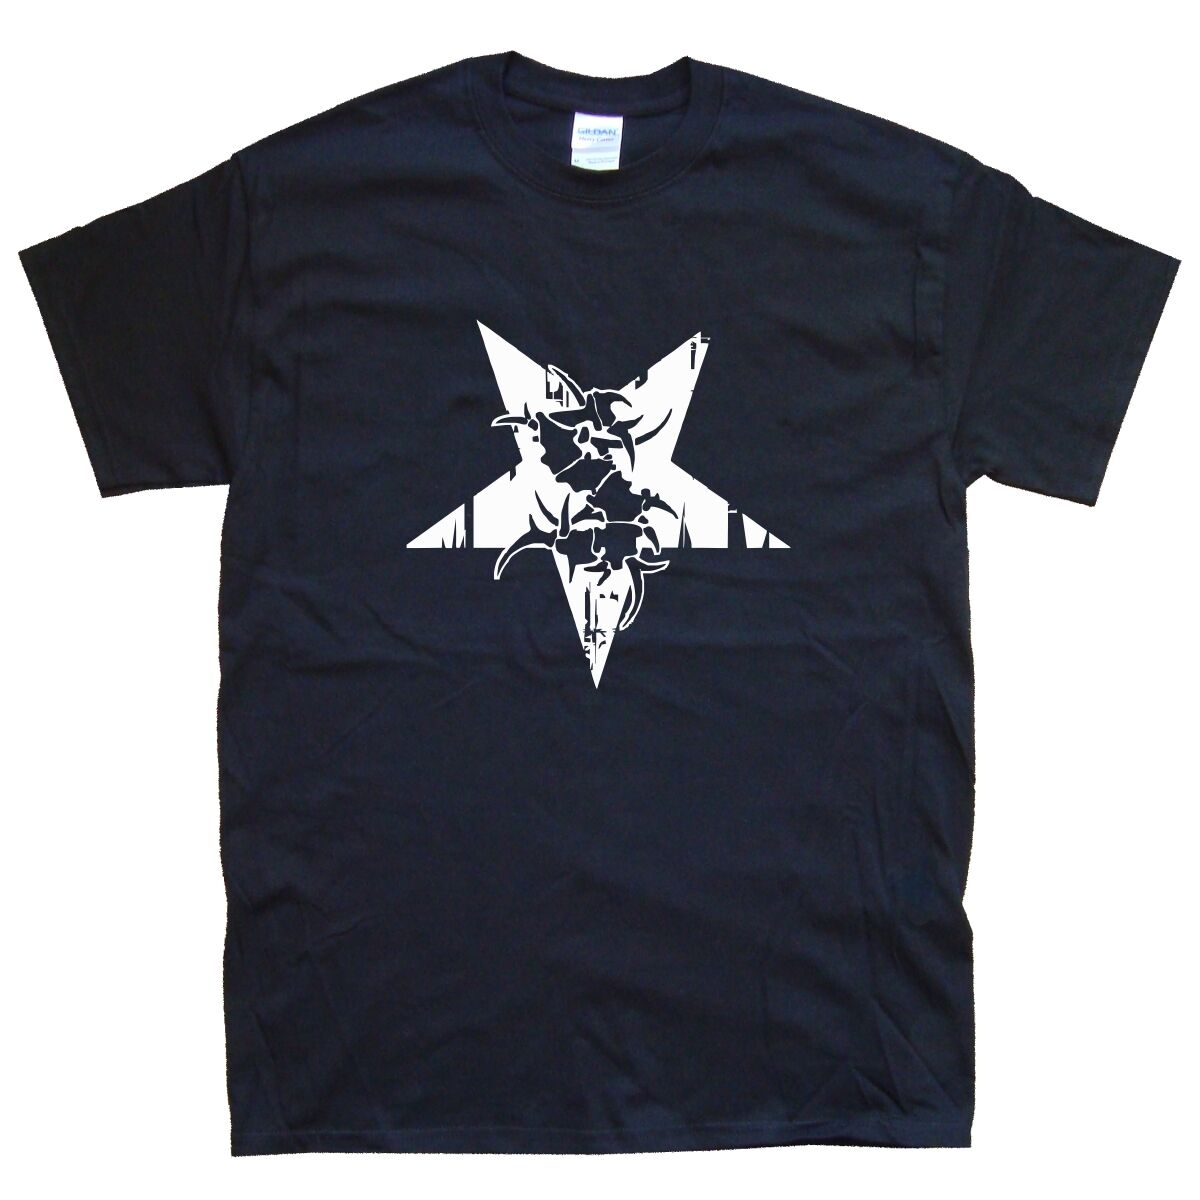 Sepultura Star T Shirt Sizes S M L Xl Xxl Colours Black White